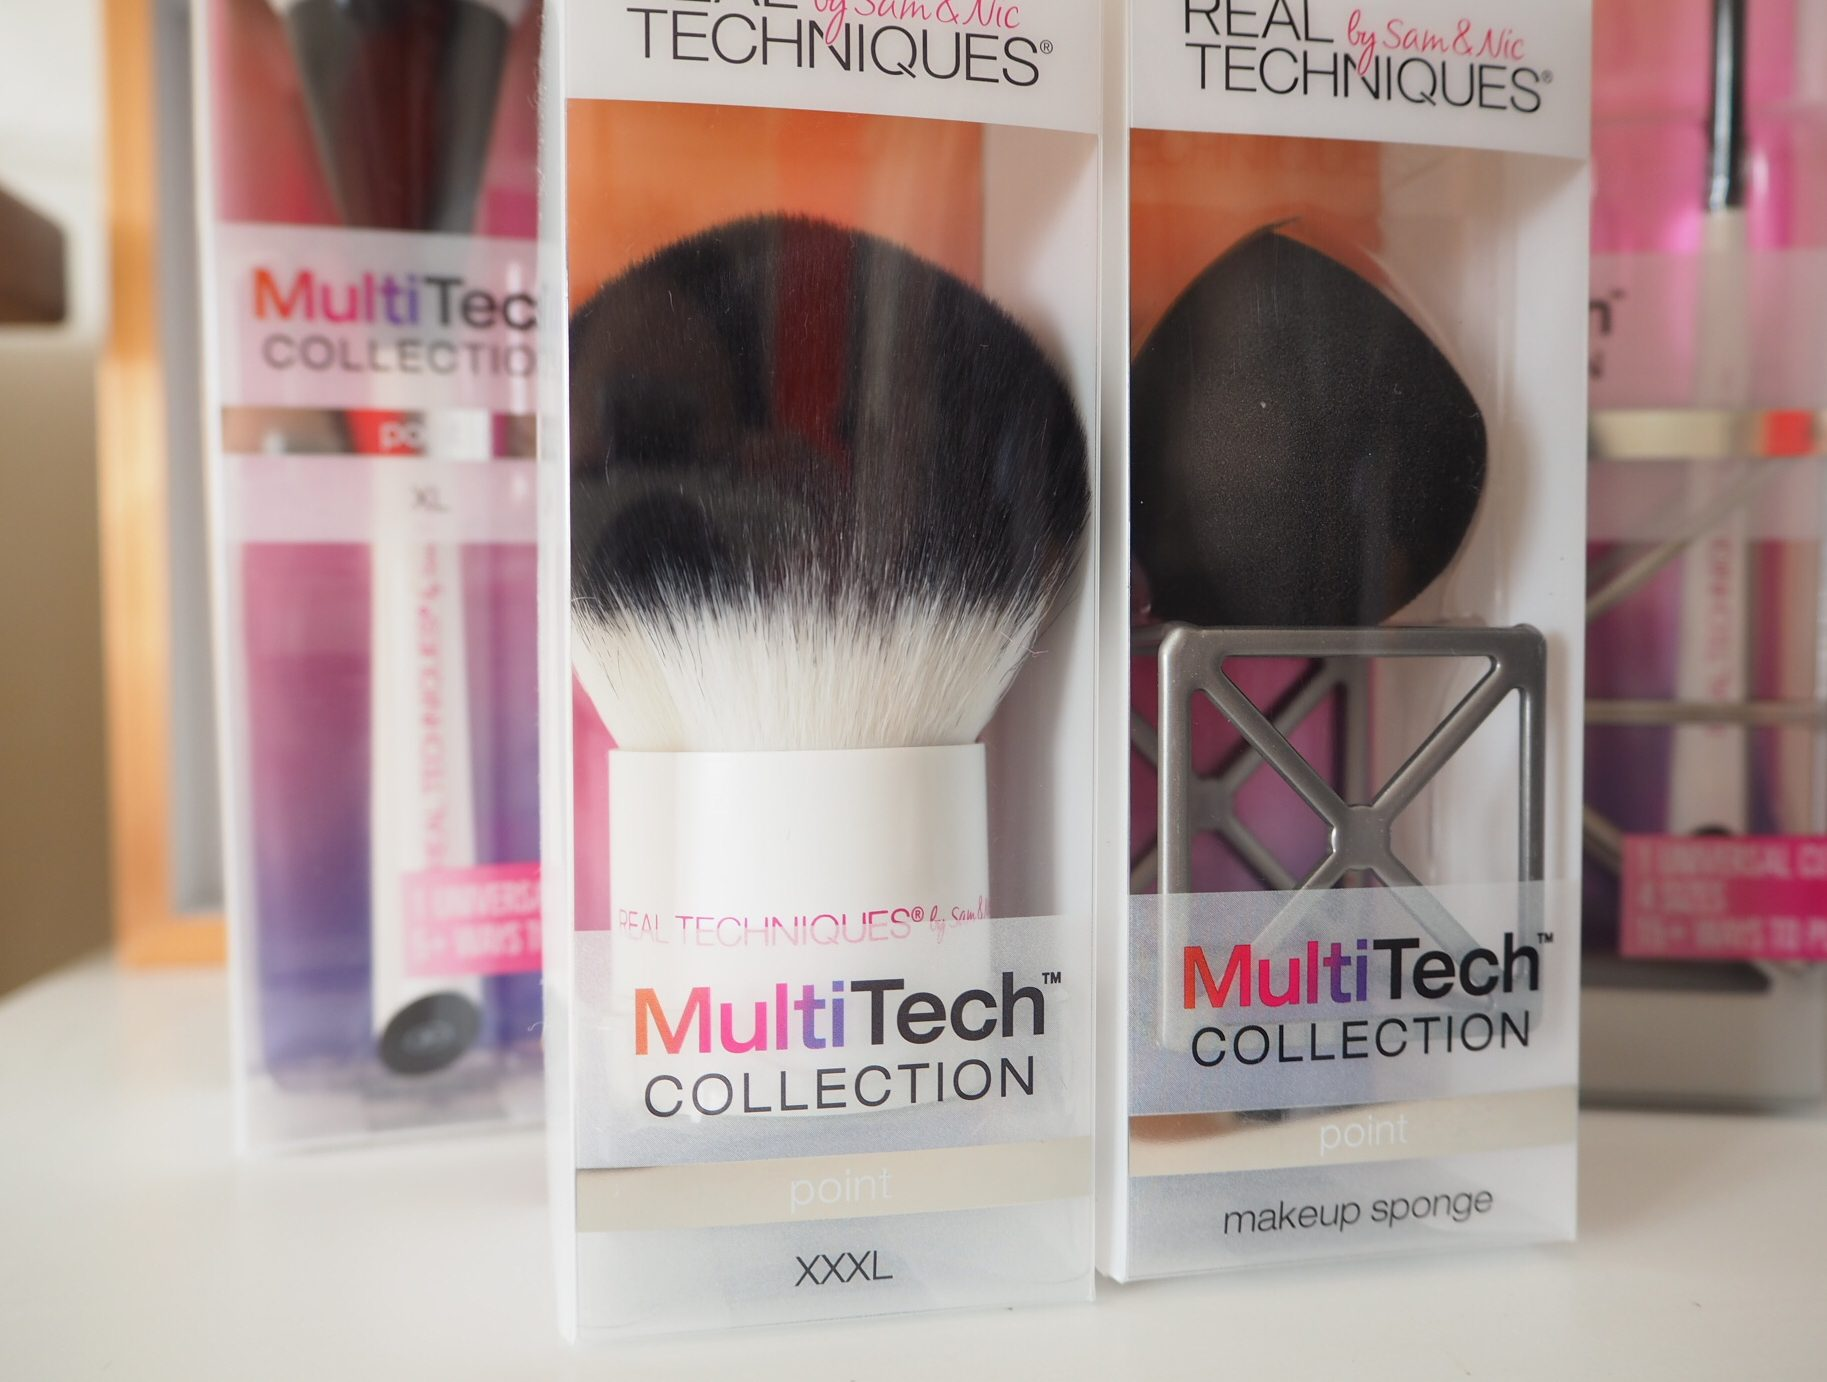 MultiTech Real Techniques Brush and Sponge